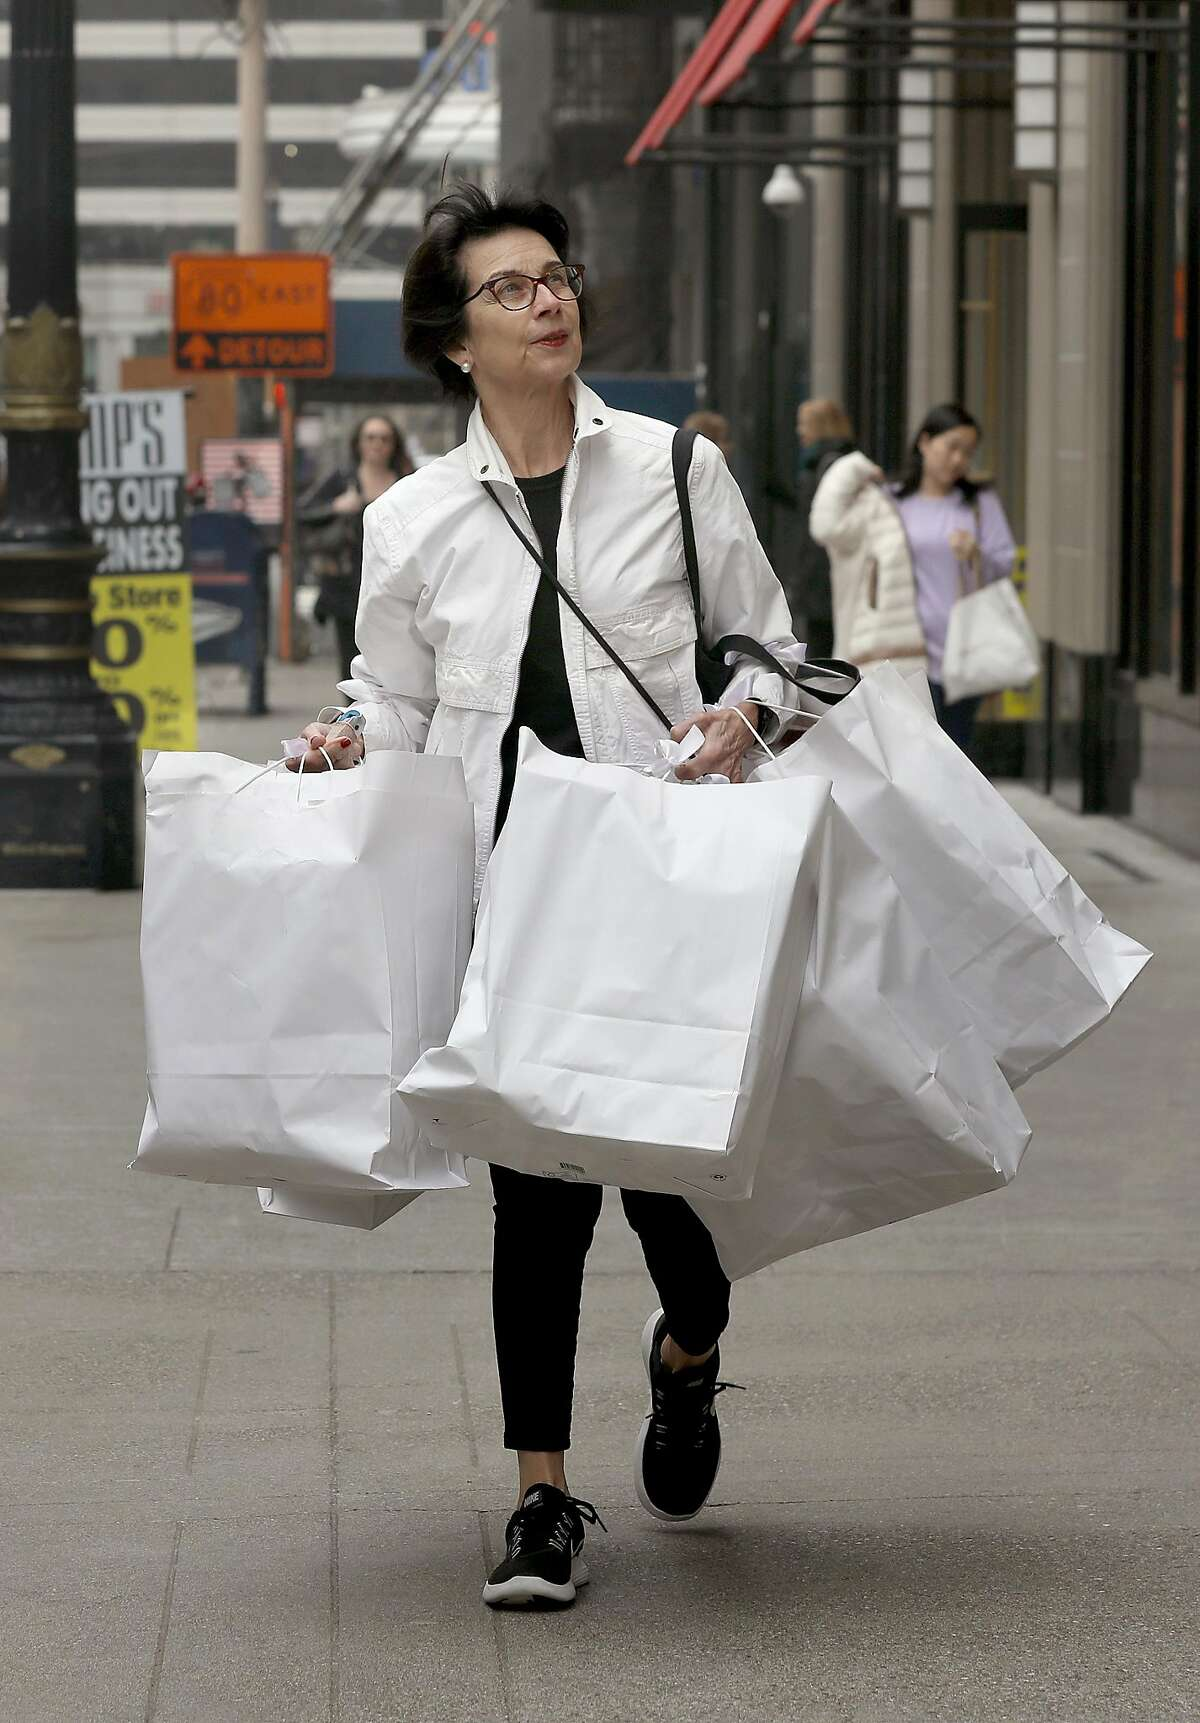 Luxury property specialist Rebecca Hoffman from Compass real estate buys 16 leather wine carriers from Gump's on Thursday, Dec. 20, 2018, in San Francisco, Calif.